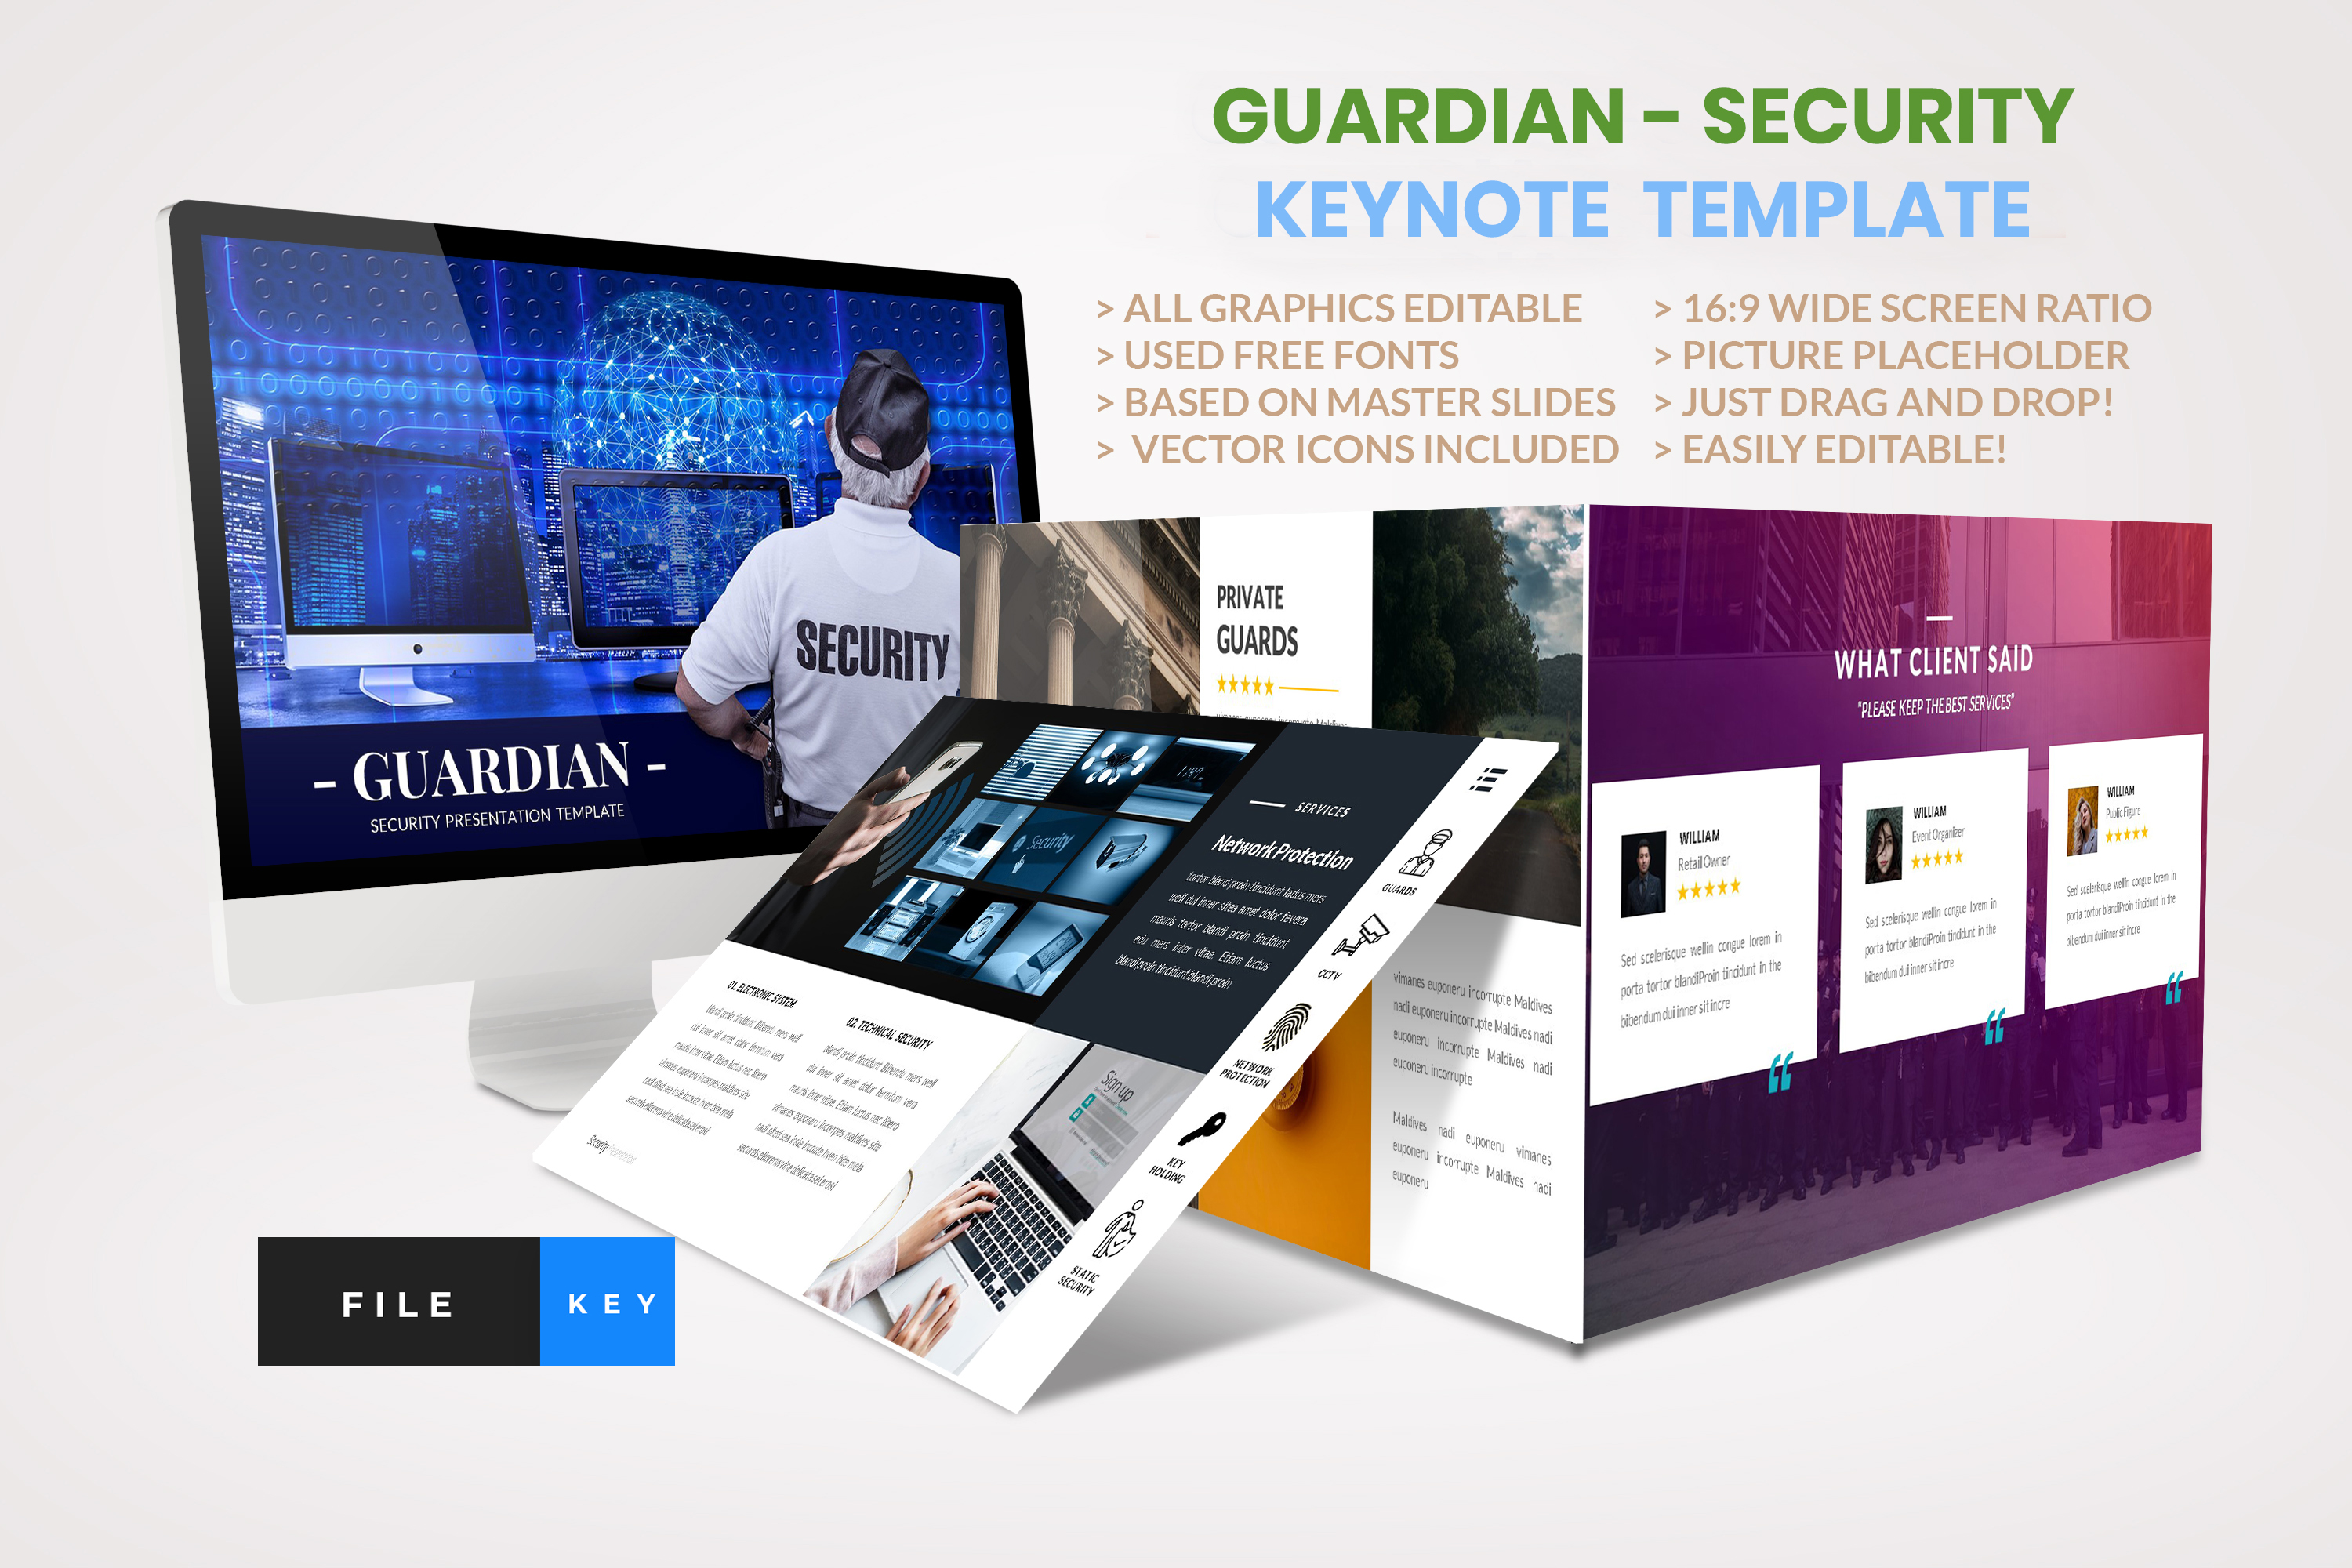 Guardian - Security keynote template example image 1